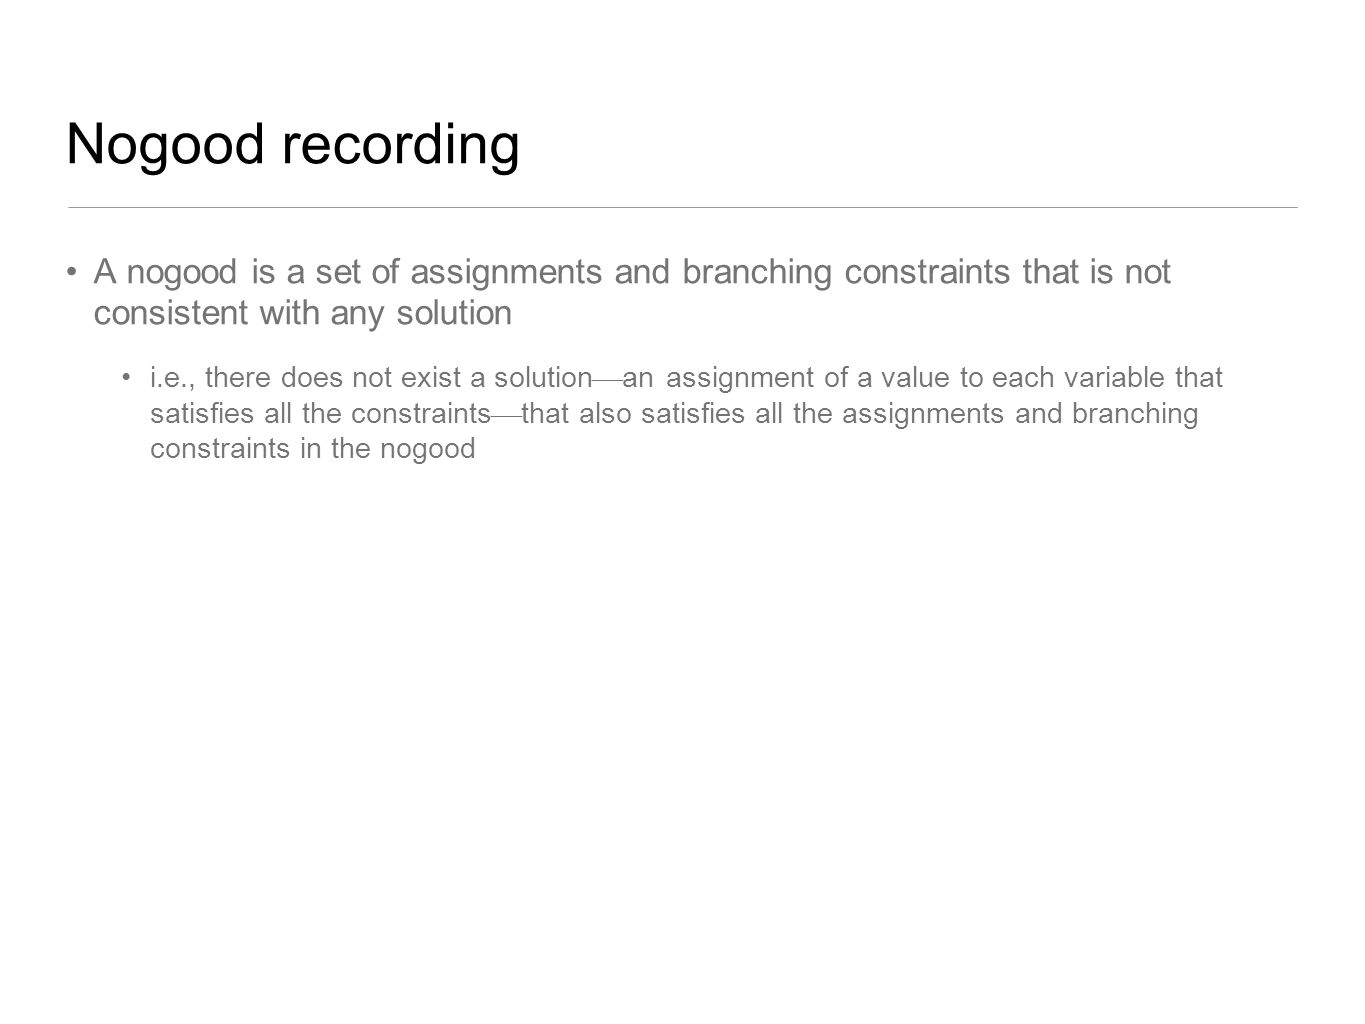 Nogood recording A nogood is a set of assignments and branching constraints that is not consistent with any solution.